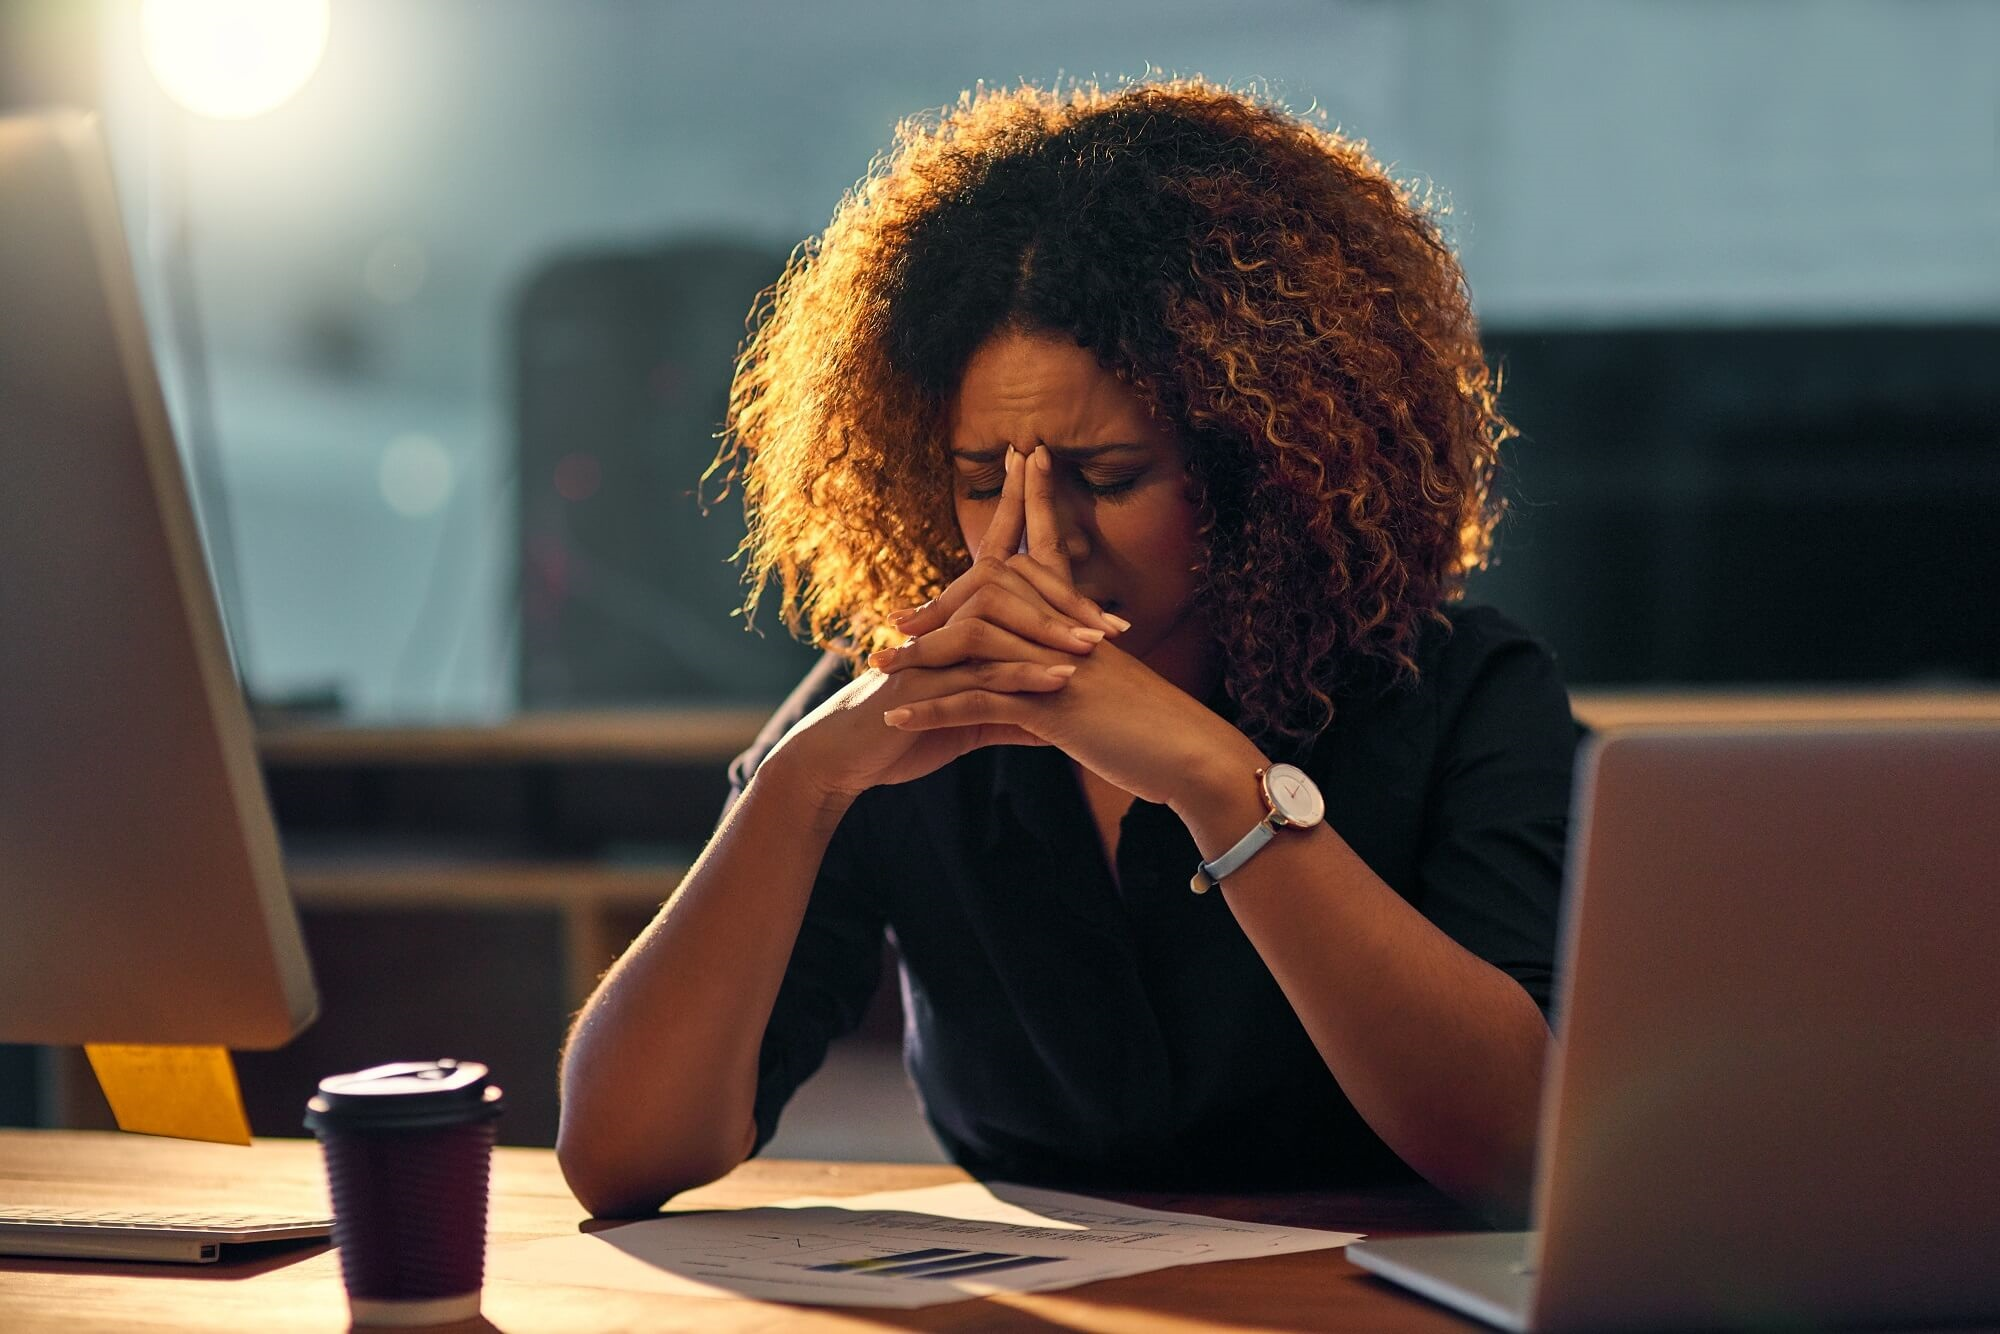 Female Neurologists Have Higher Job Burnout Than Male